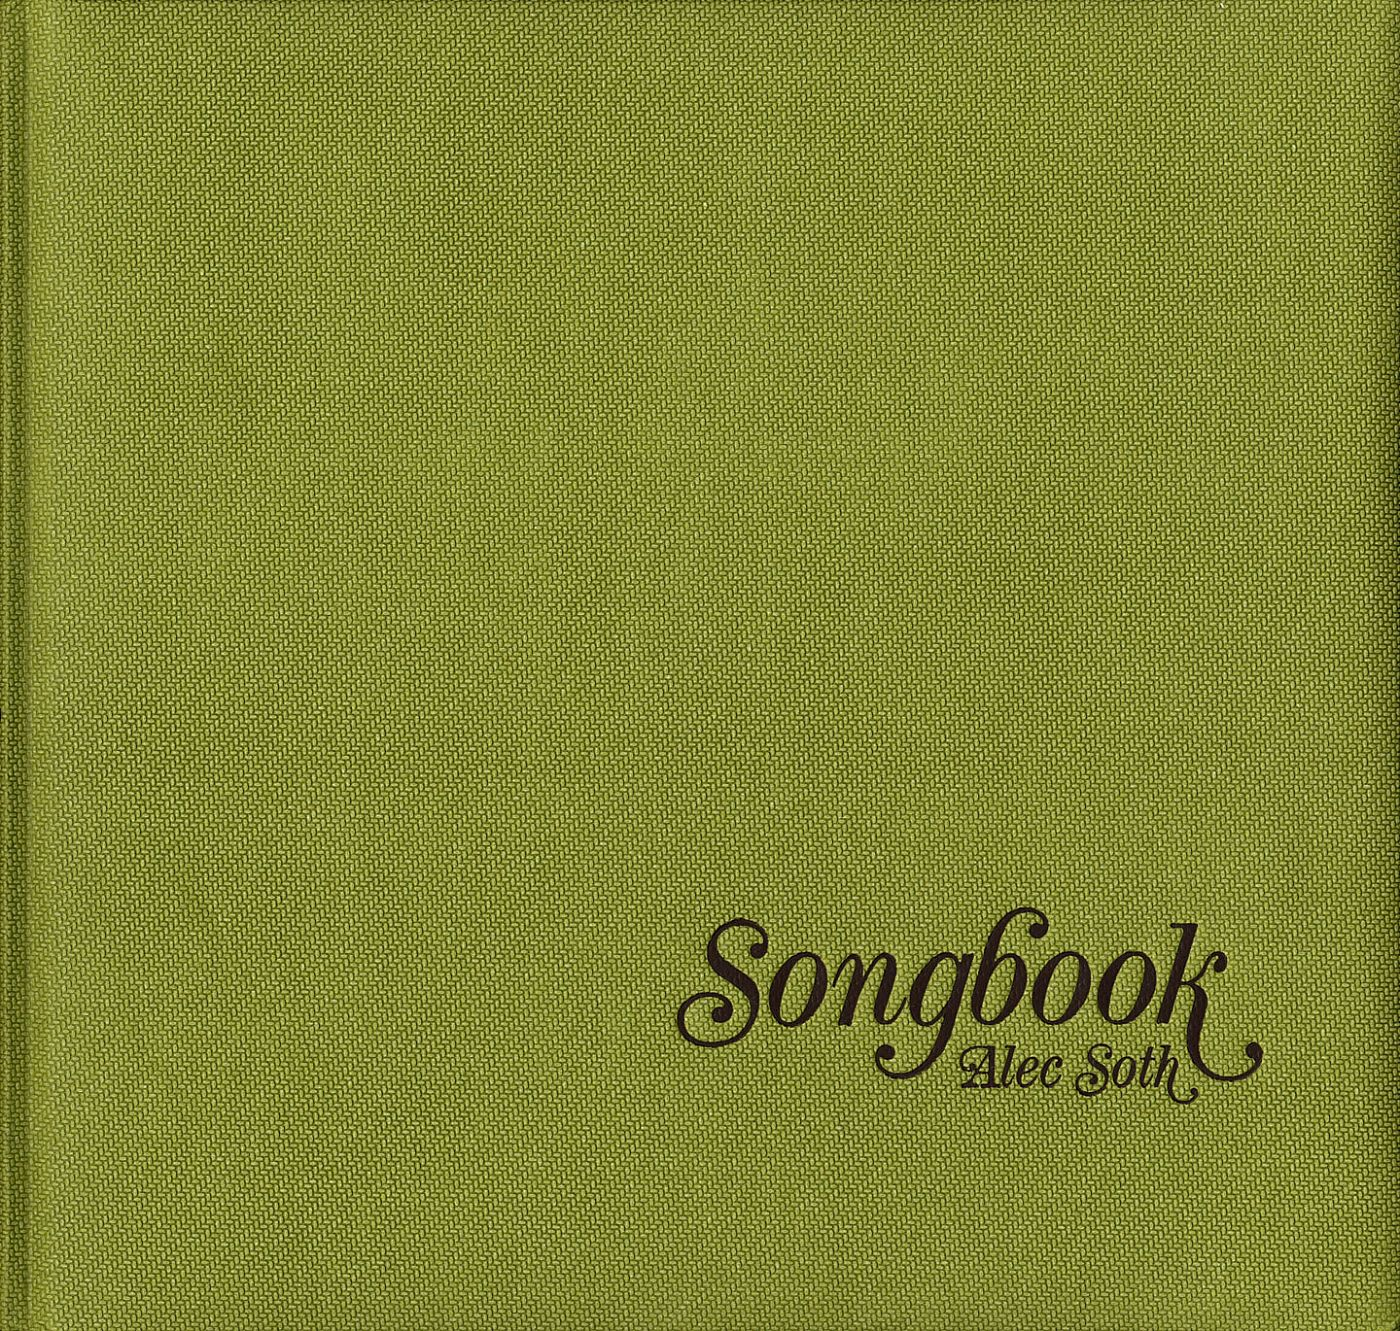 Alec Soth: Songbook (First Printing) [SIGNED]